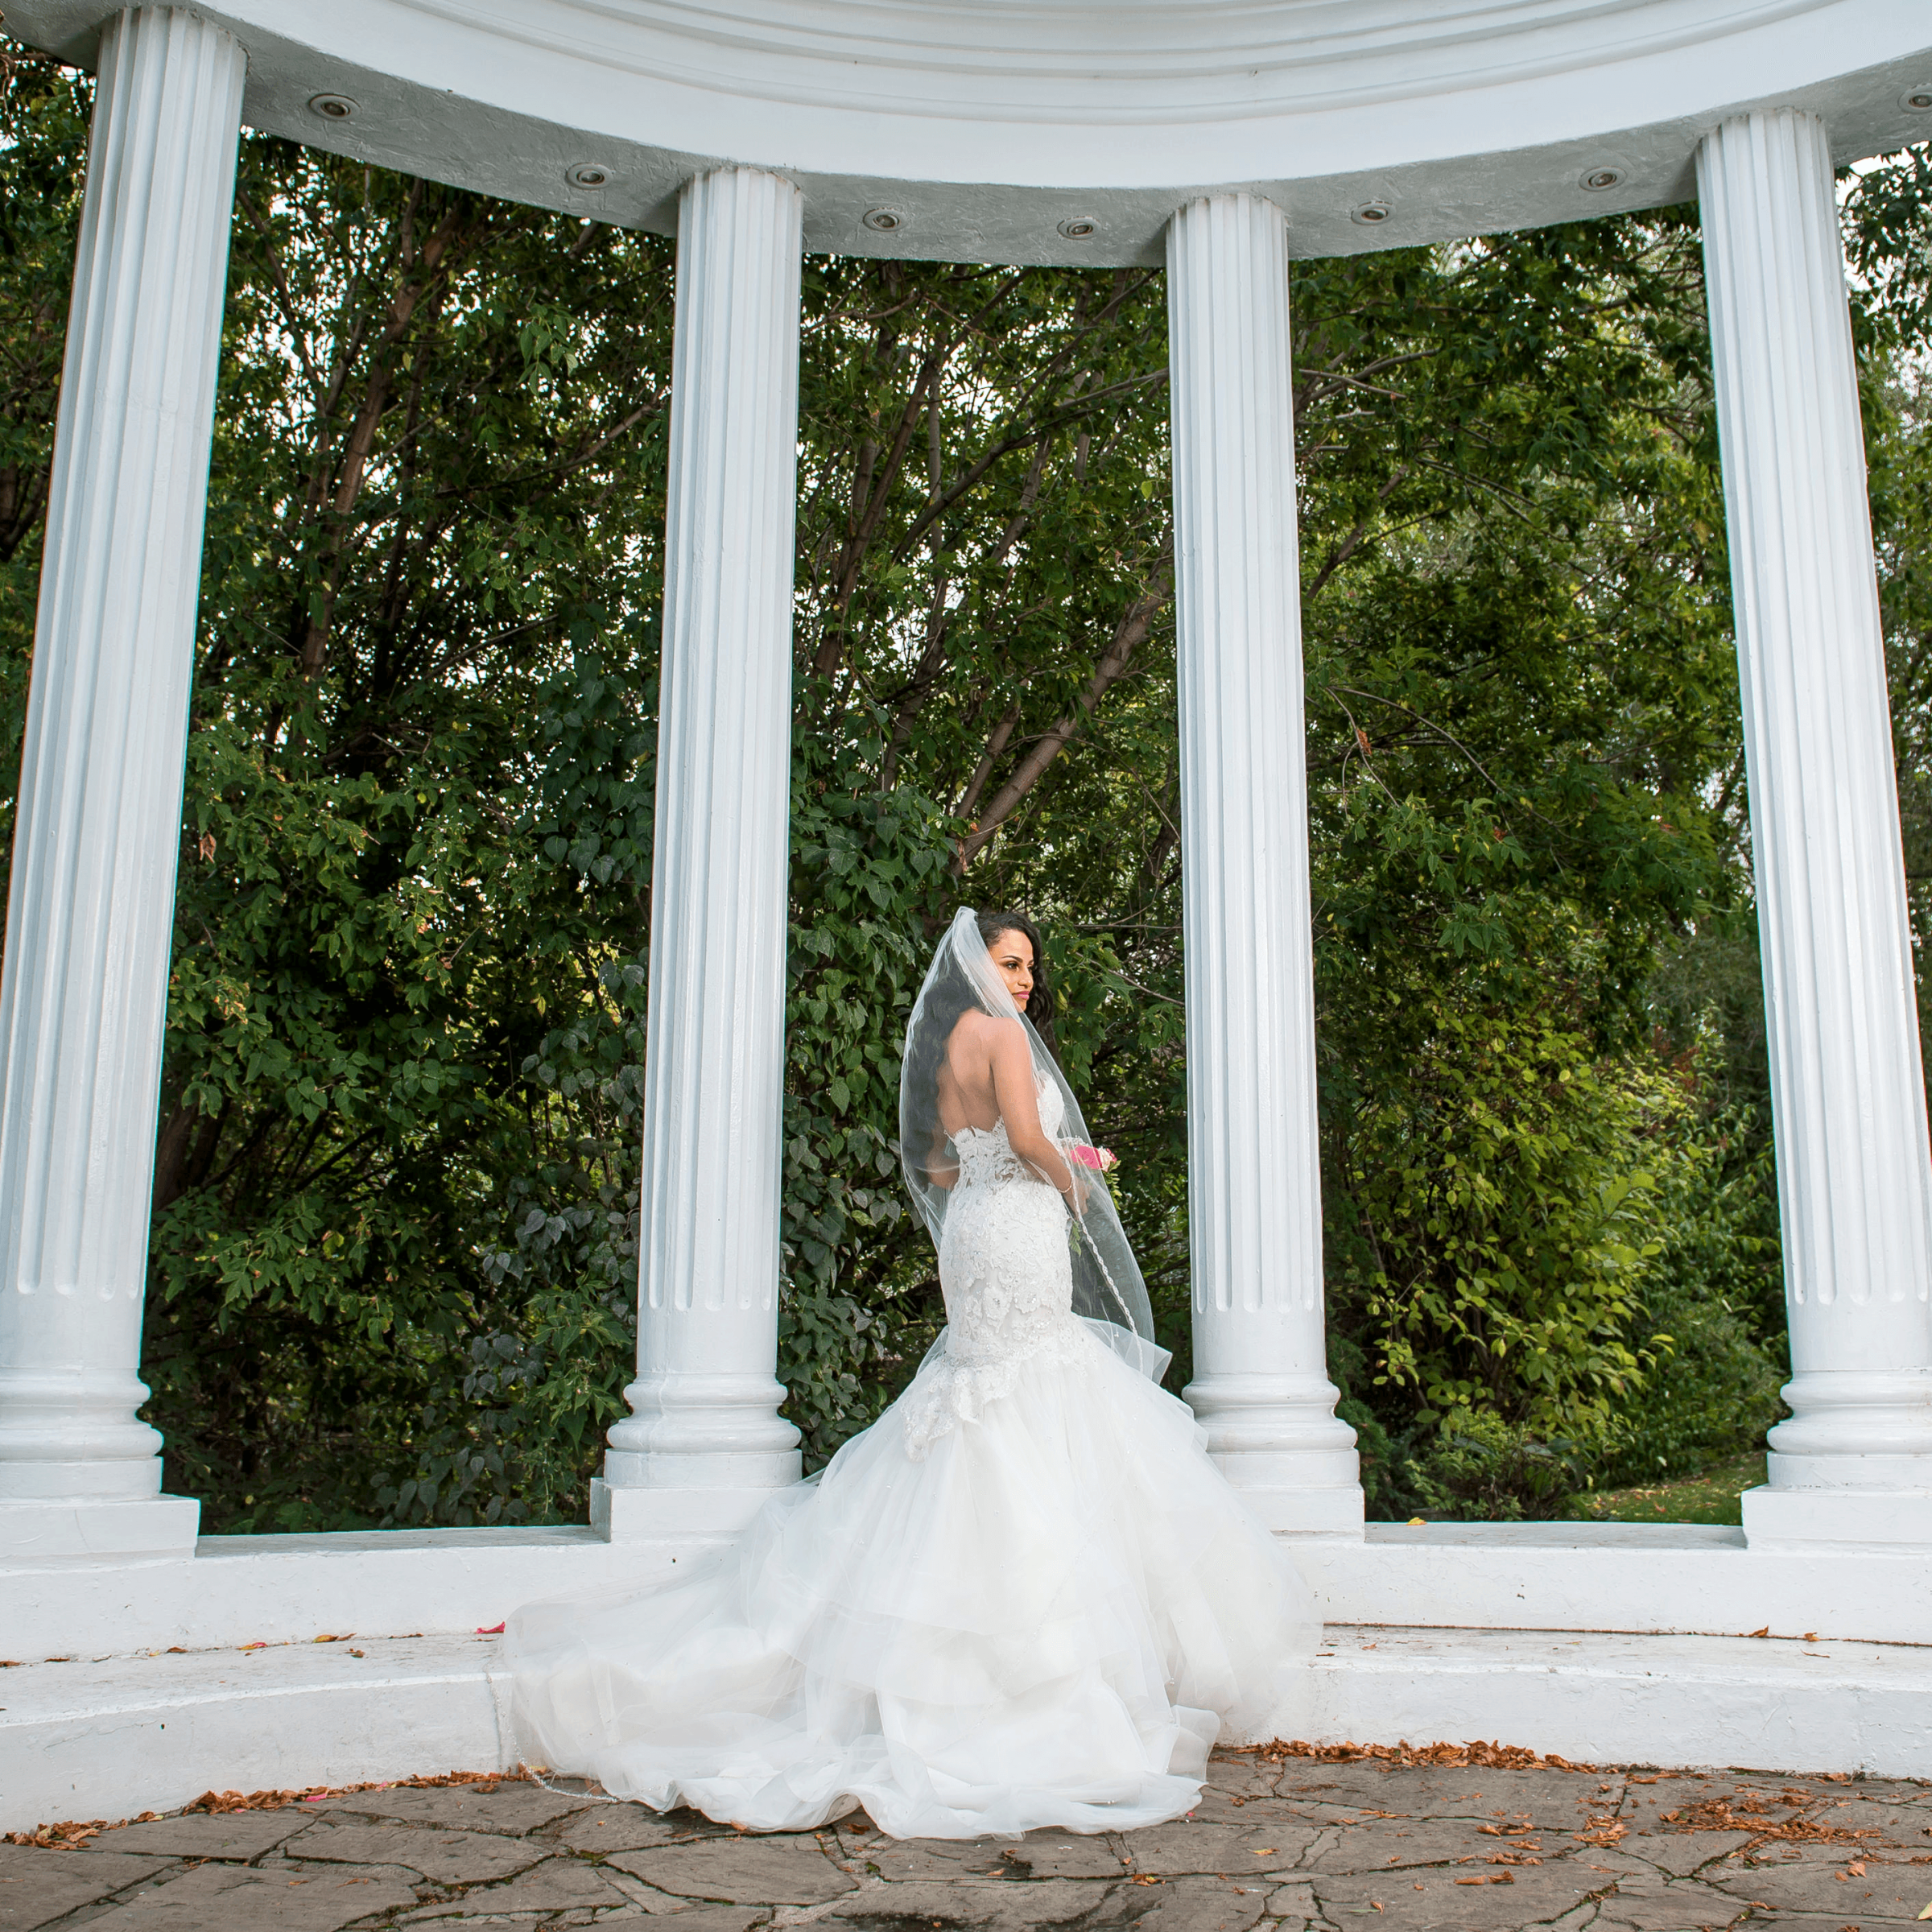 A bride standing in the Paradise Banquet Halls garden venue's columned area with lush, green trees in the background.